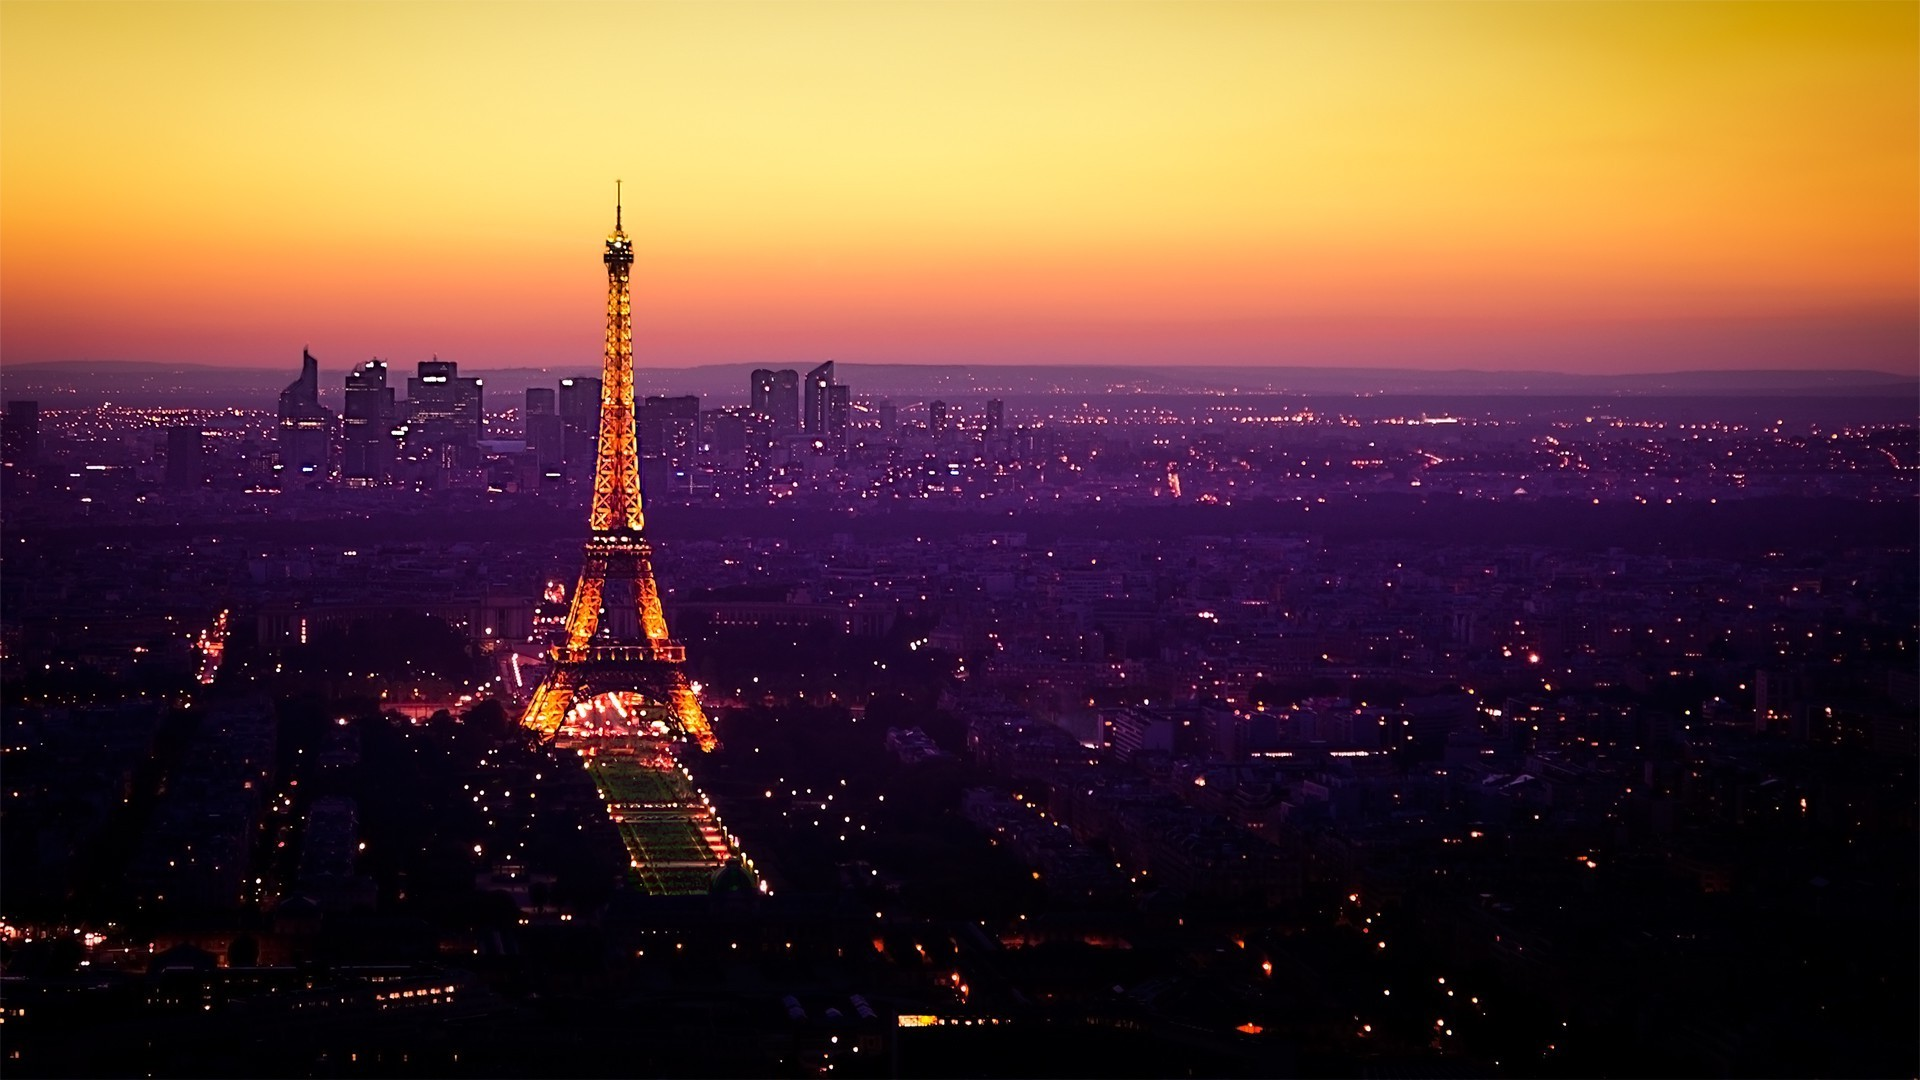 1366x768 Wallpapers Hd Cars France Paris Eiffel Tower Night Landscape Wallpapers